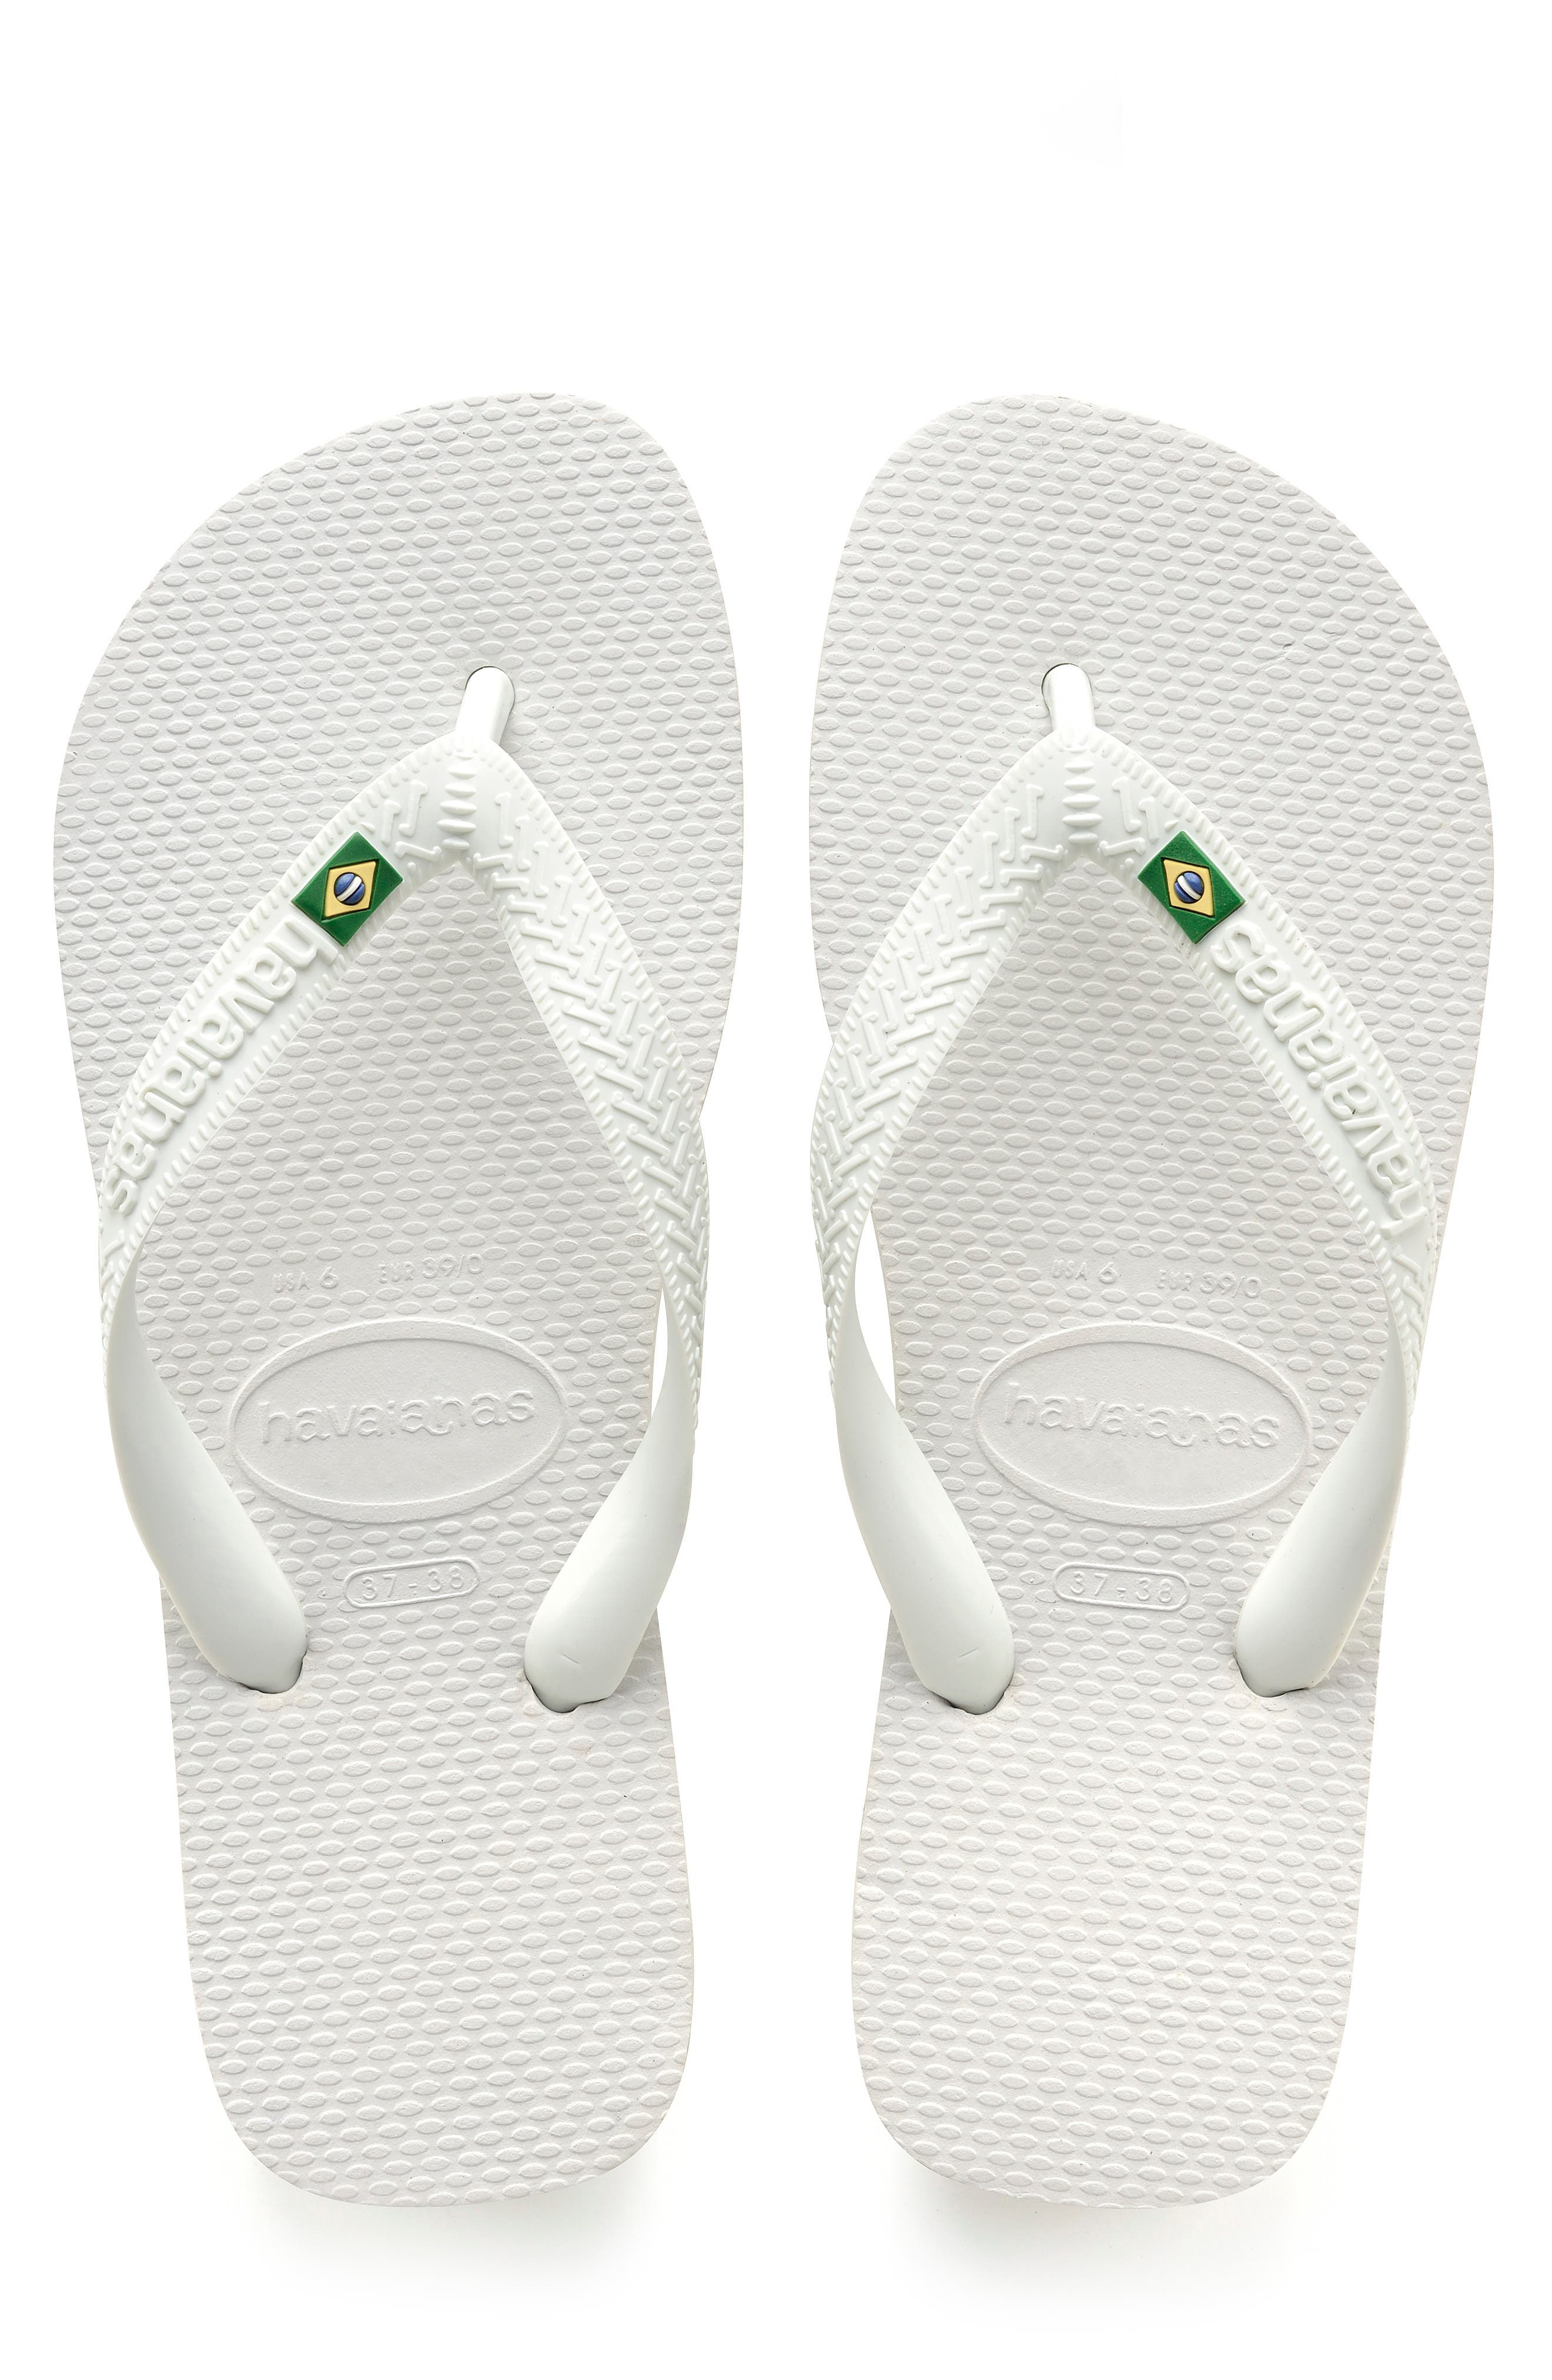 HAVAIANAS 'Brazil' Flip Flop, Main, color, WHITE